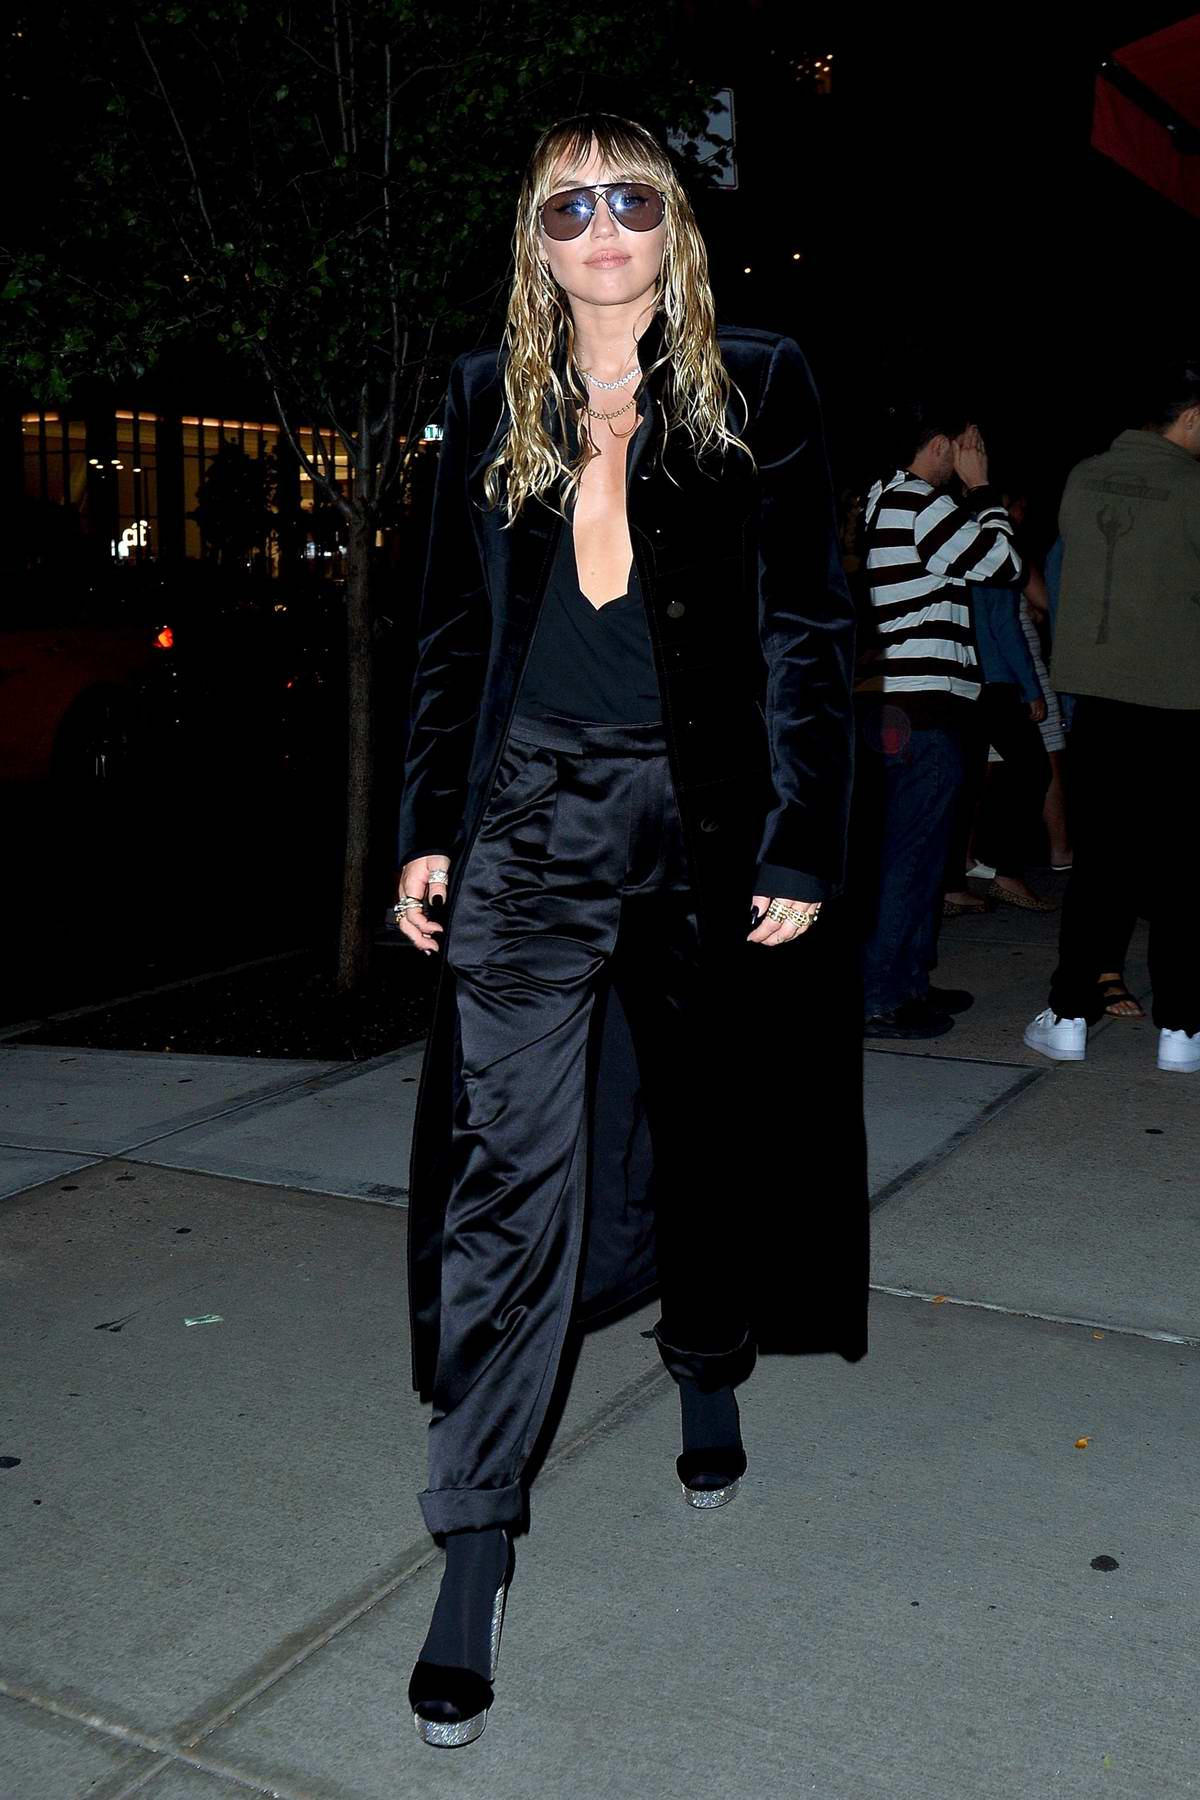 Miley Cyrus dons all-black as she steps out of the Tom Ford Fashion Show during NYFW in New York City